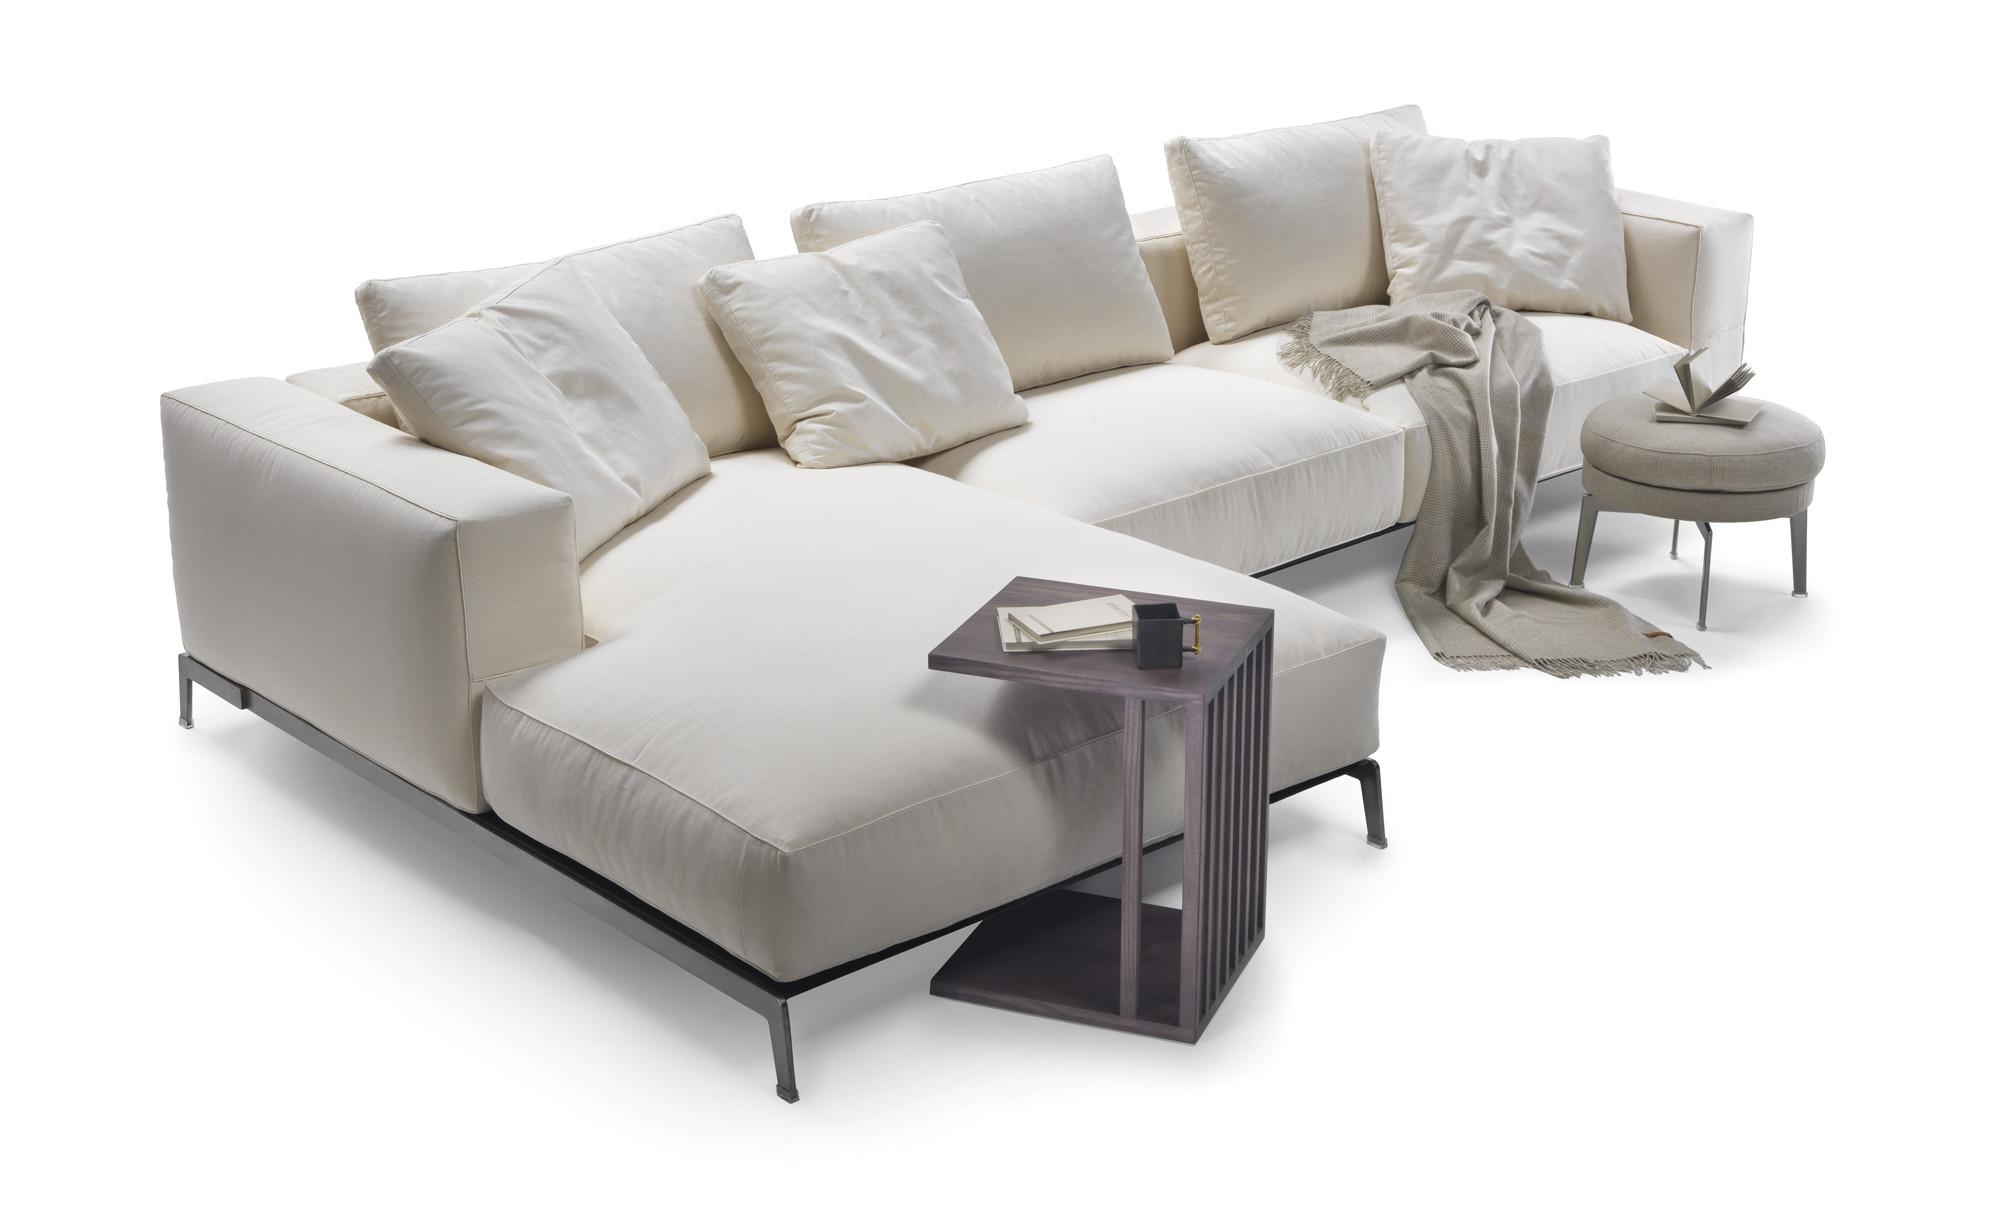 Modular Furniture Sofa Fabio Linteloo Ecc Best